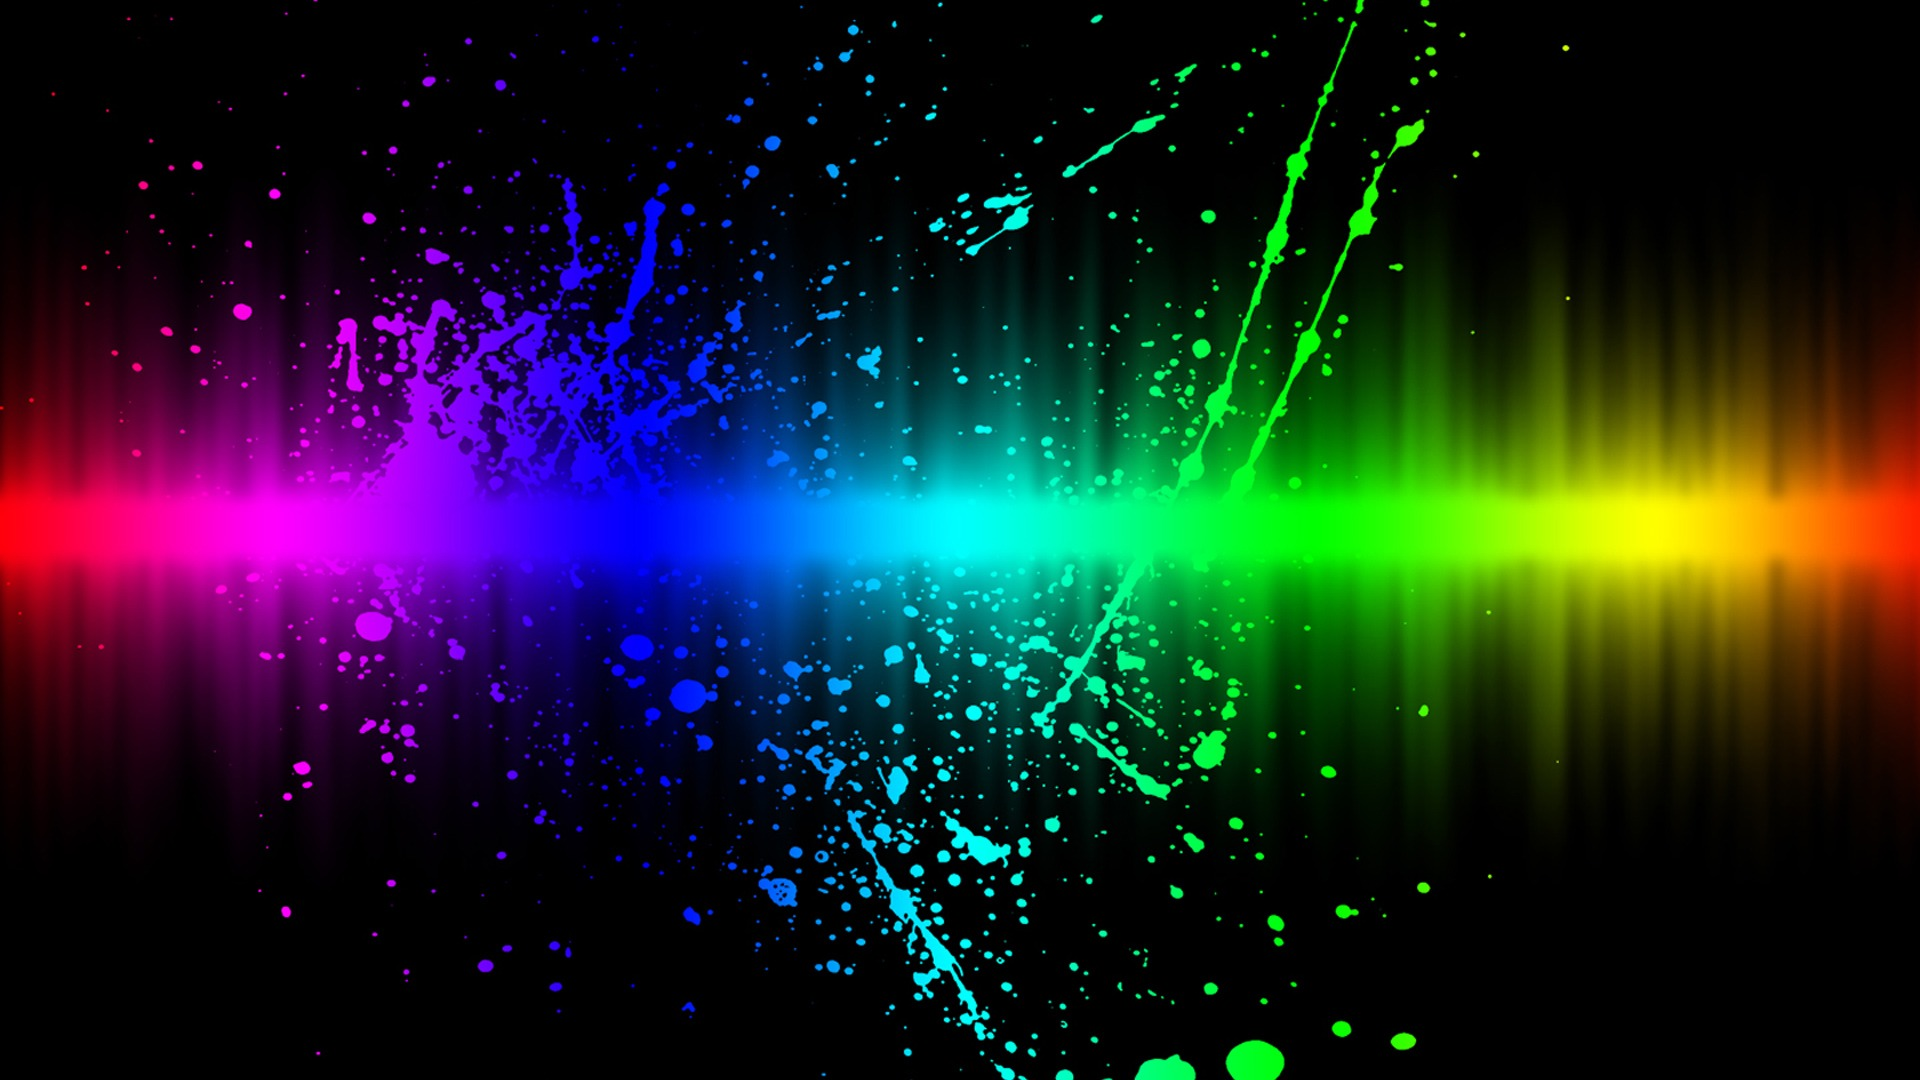 Color Explosion Wallpapers and Backgrounds 3573 High Resolution